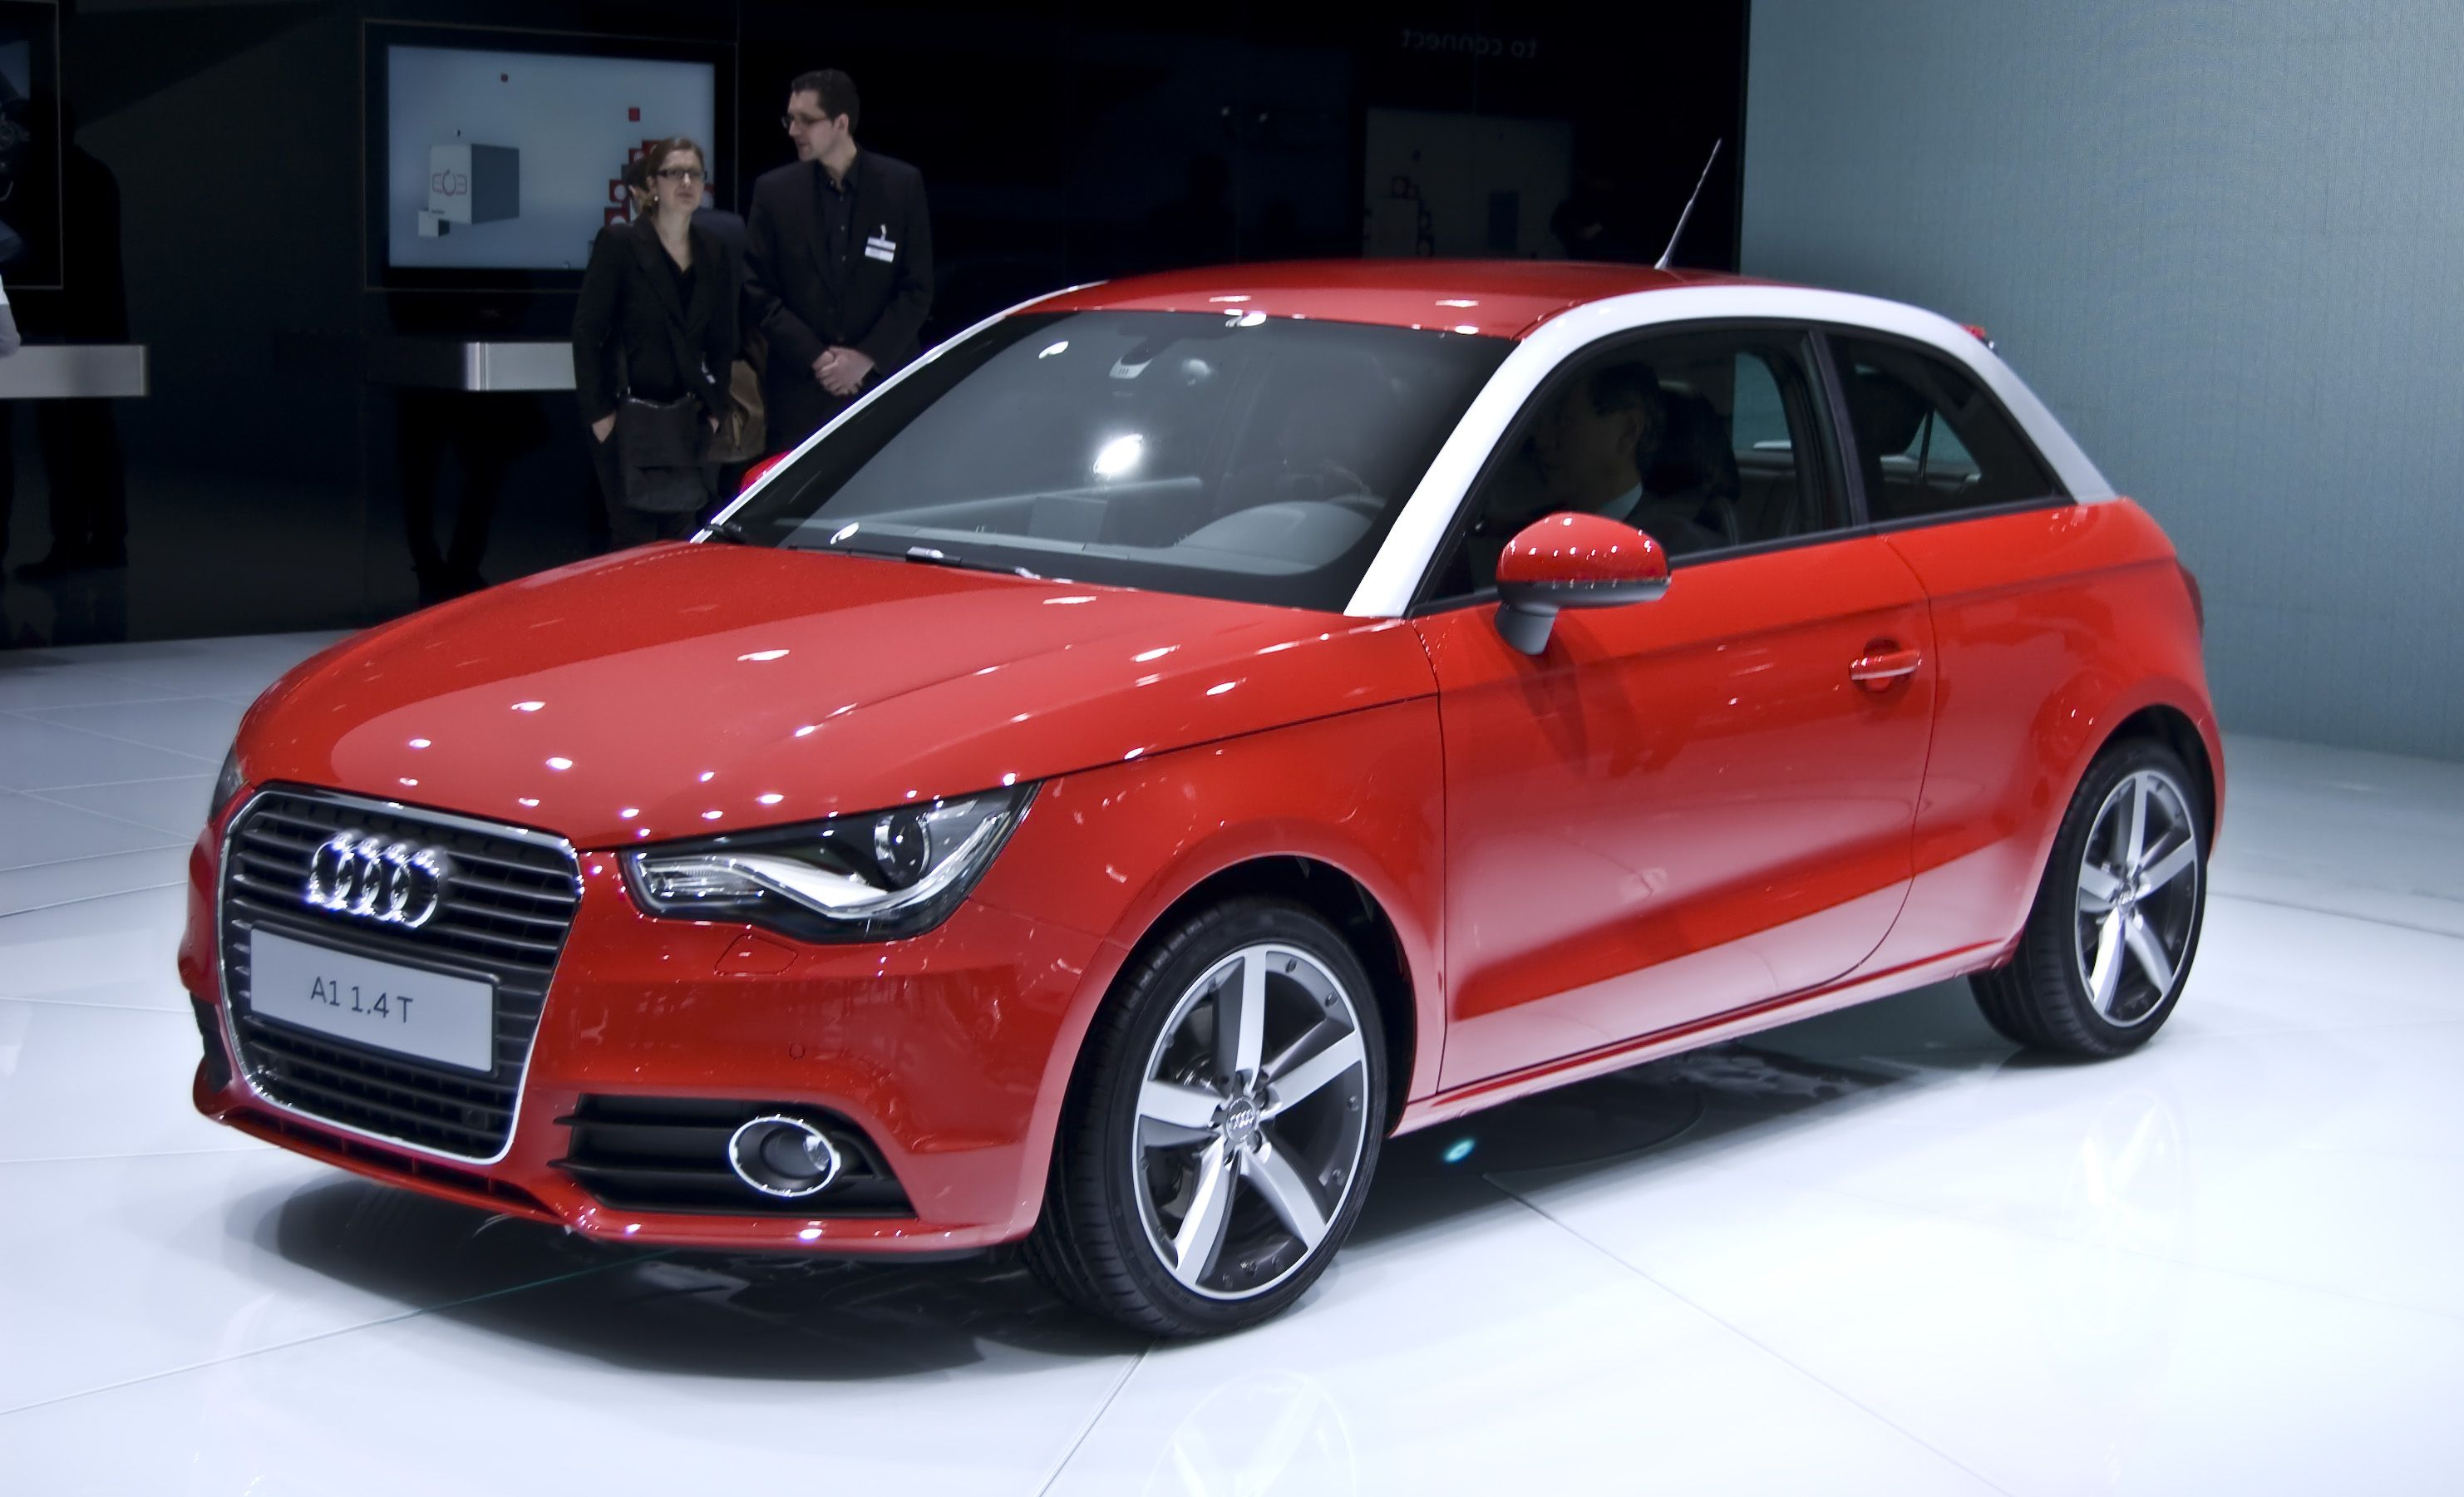 red rouge audi a1 awesome cars pinterest. Black Bedroom Furniture Sets. Home Design Ideas